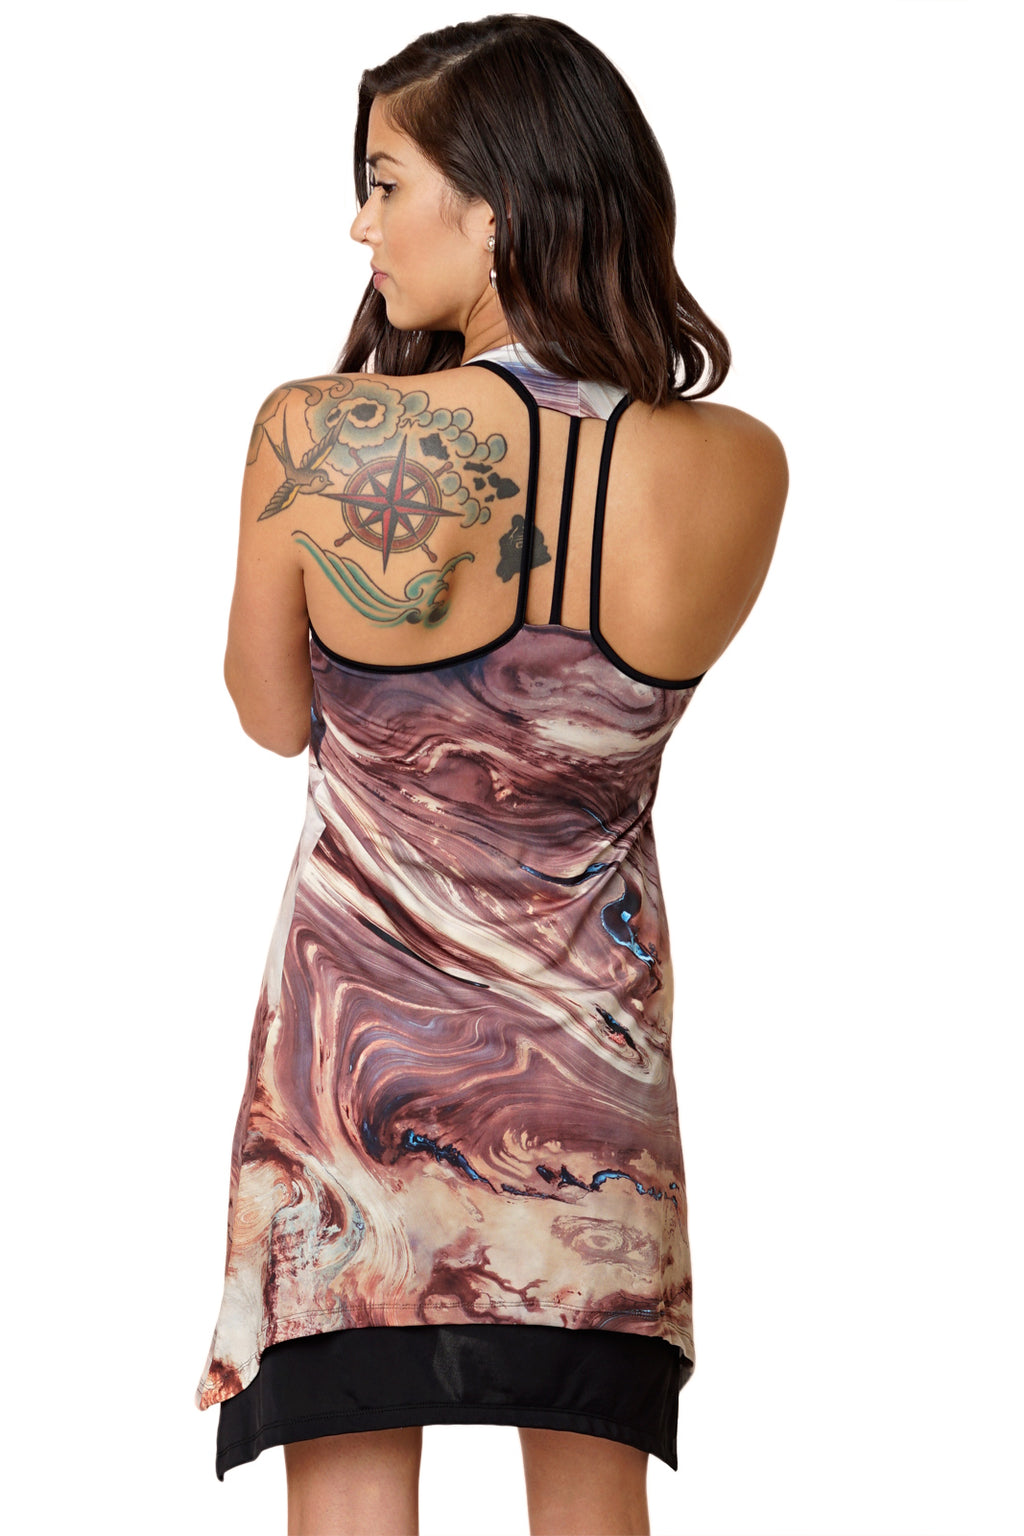 Gypsy Dress-Earth Image Clothing-Nature Clothing-Dasht-e Kavir-Deserts-Back View